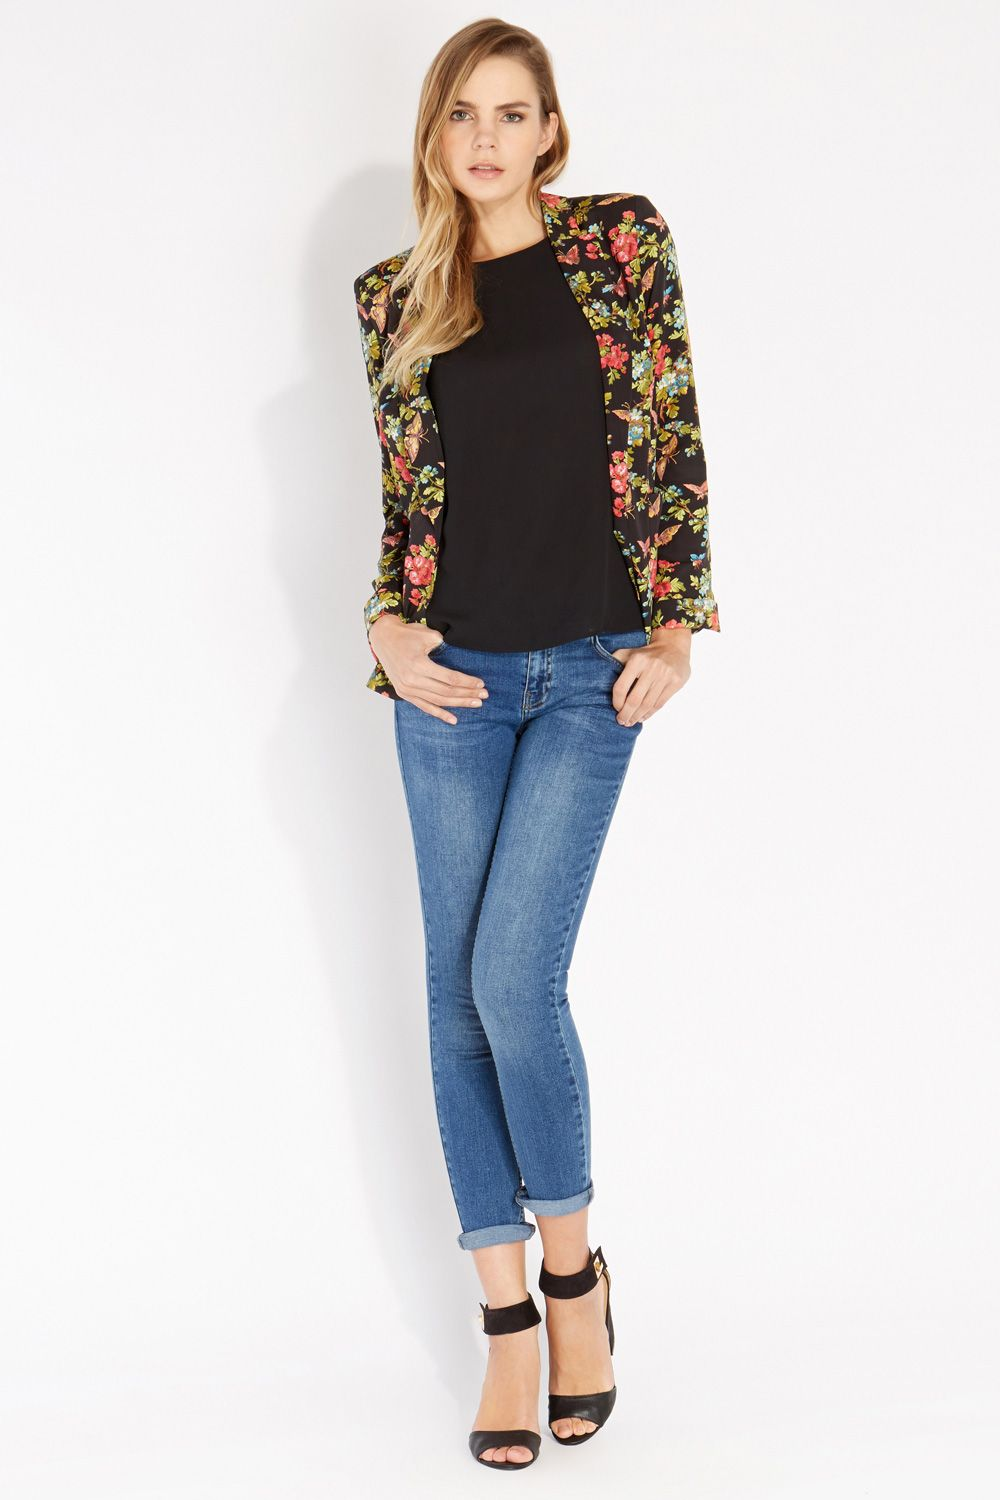 Butterfly blossom soft jacket